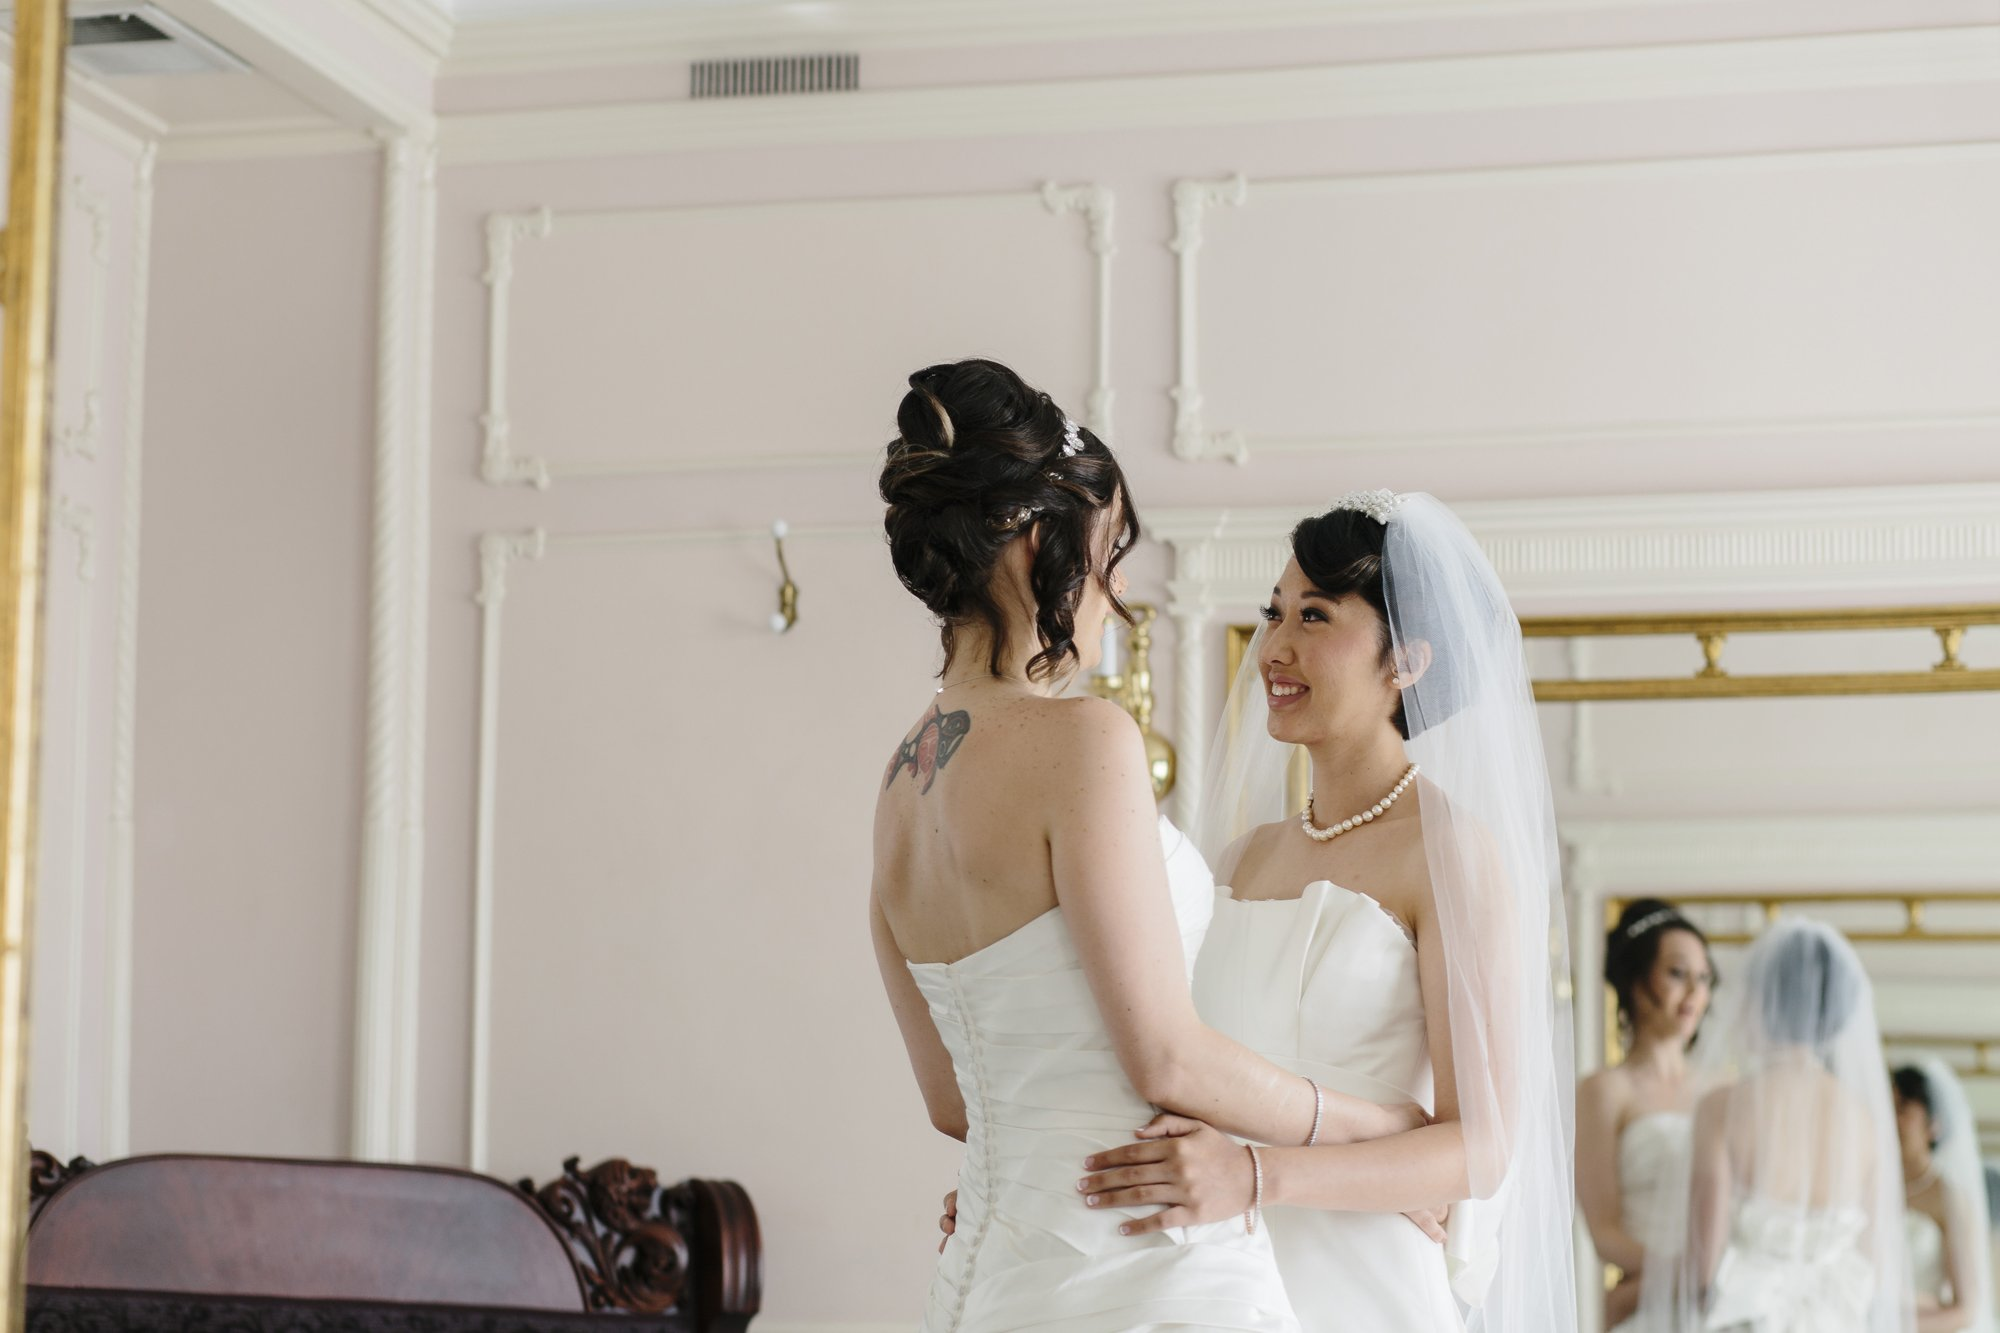 Spokane Davenport LGBT Wedding // Emily Wenzel Photography